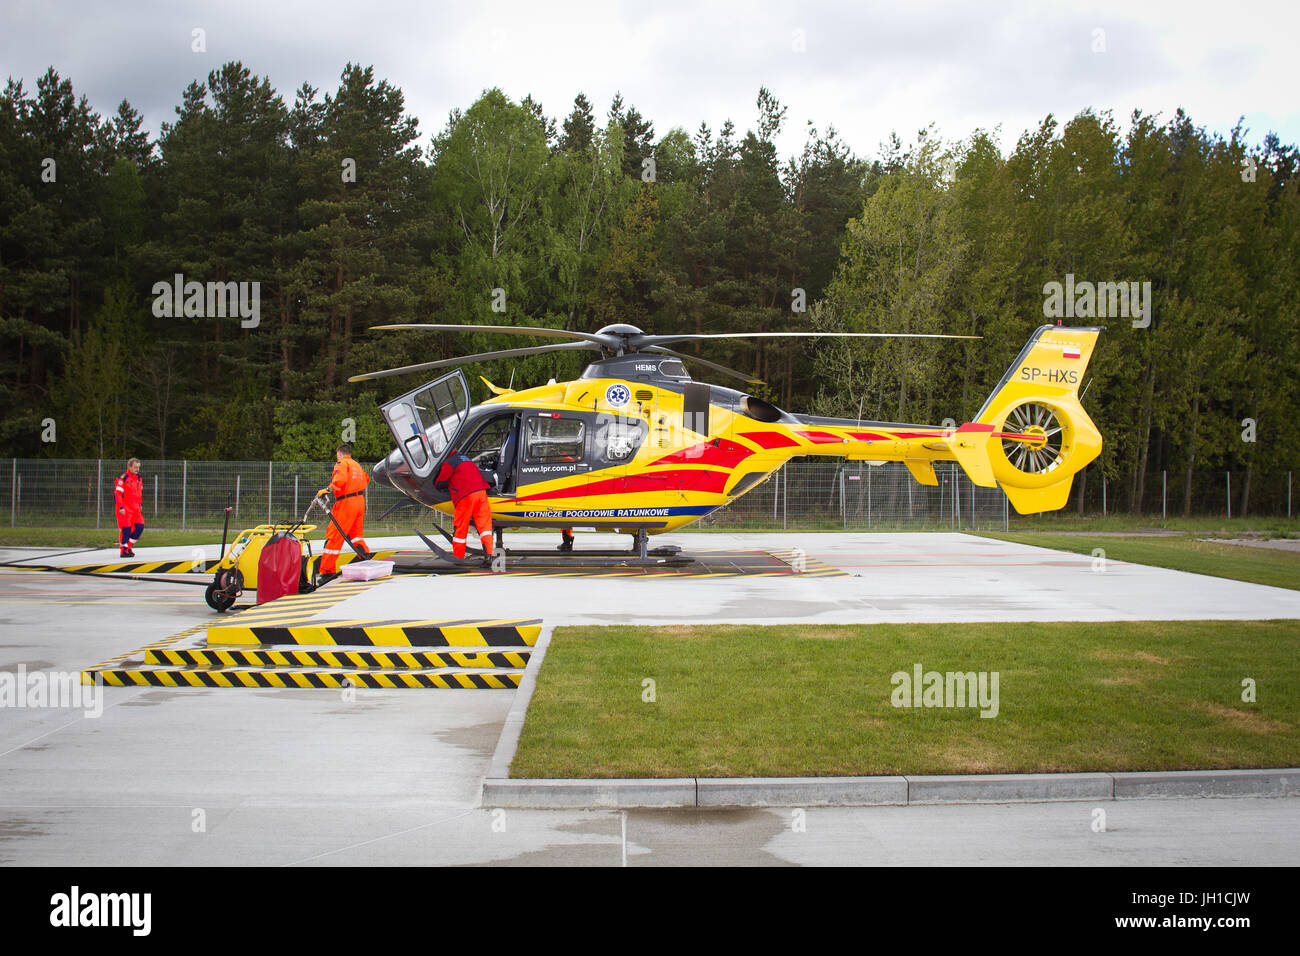 Polish Helicopter Emergency Medical Service (HEMS) Eurocopter 135 at Polsih HEMS base in Gdansk, Poland. Stock Photo